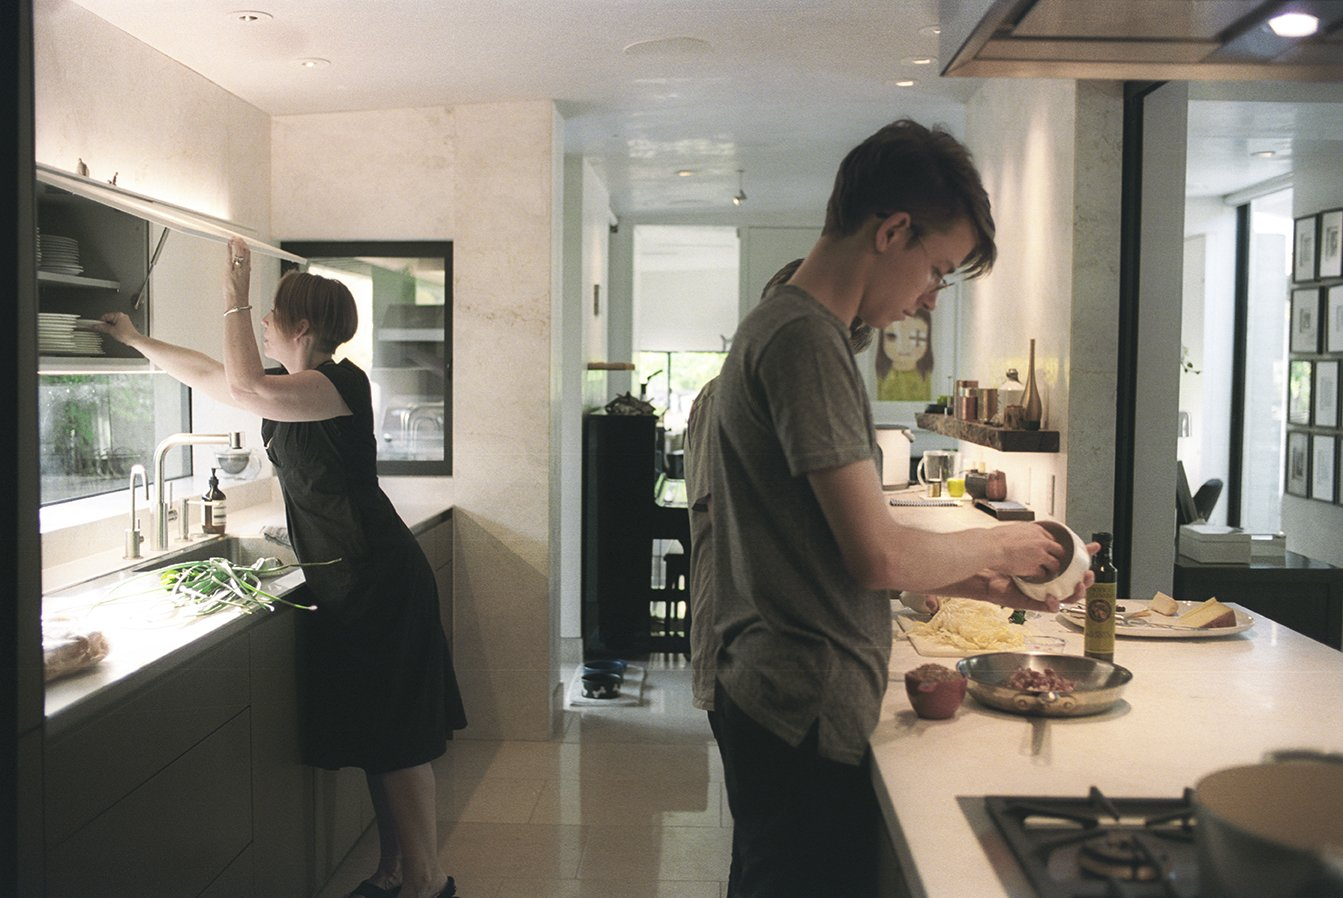 Sarah and her sons prepare a meal in the kitchen, which the Wessels recently upgraded with Bulthaup cabinets, counters, and sink. The stovetop is from Gaggenau and the faucet is from Dornbracht. On the far wall is one of Yoshitomo Nara's signature eye-patch portraits.